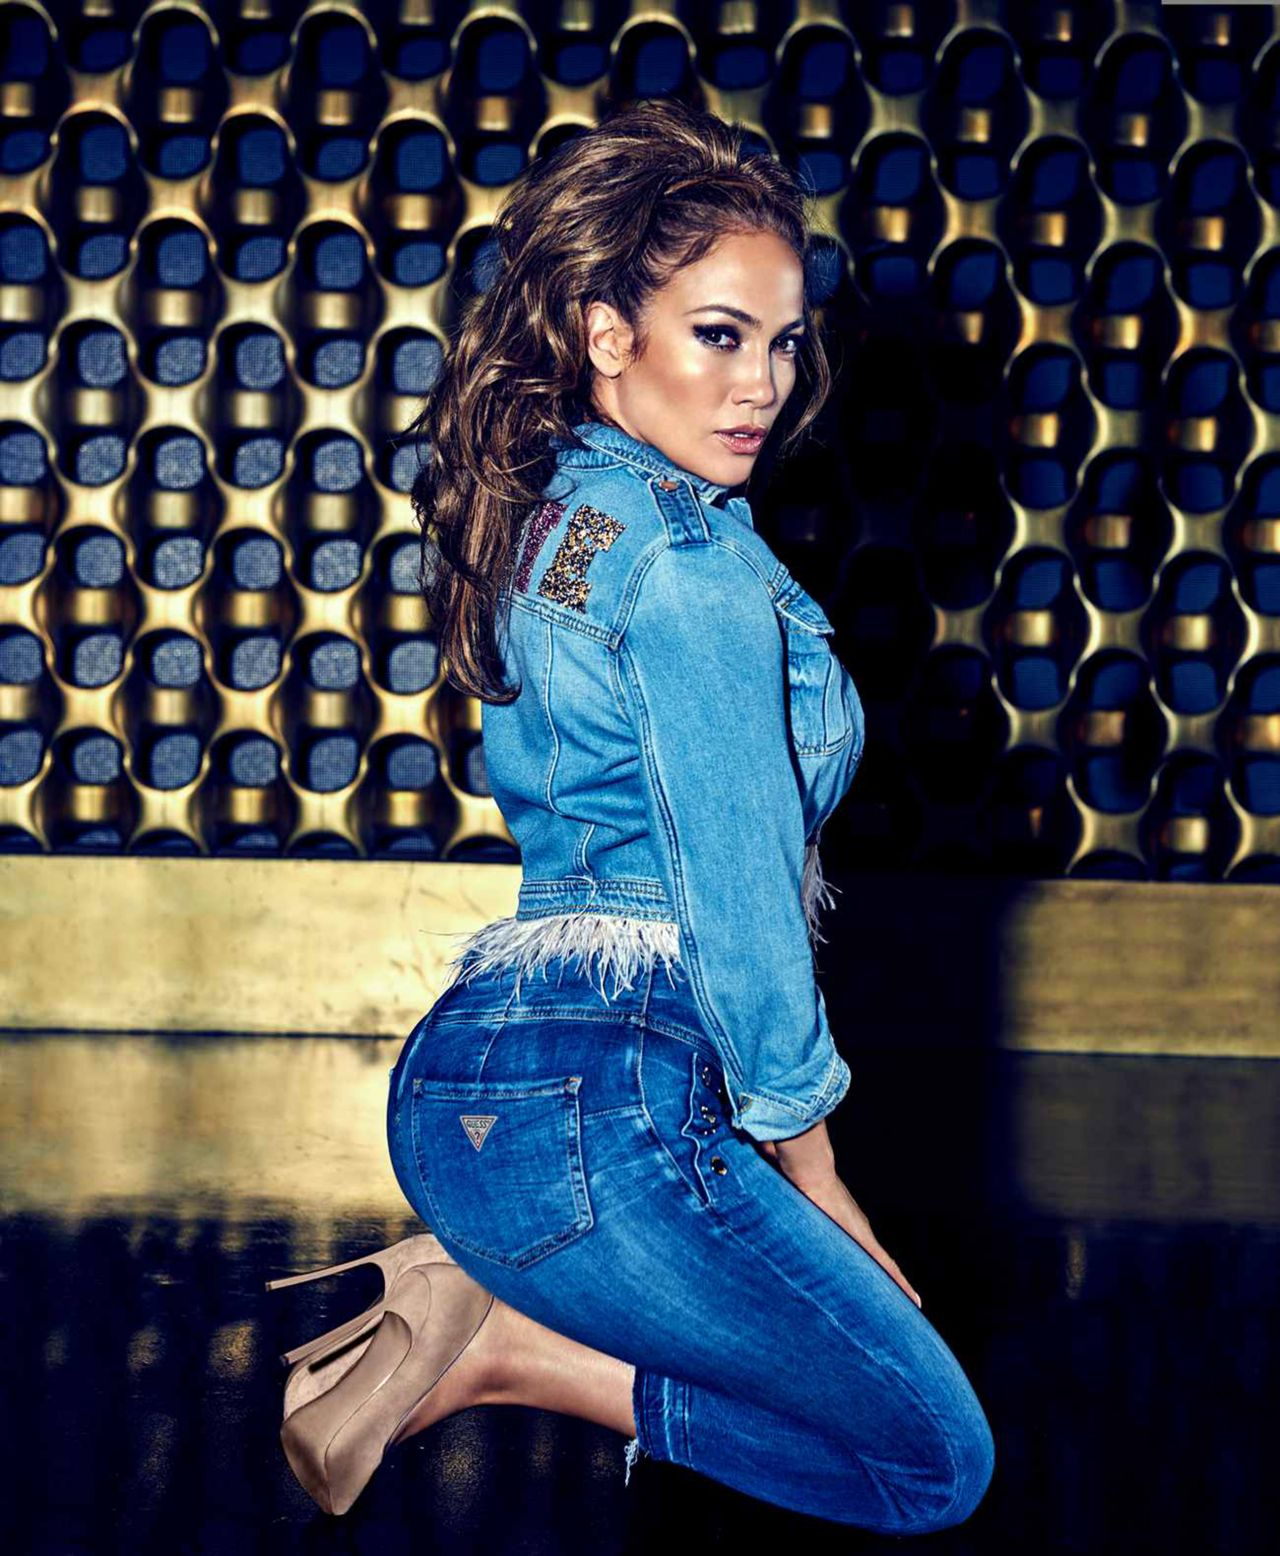 Jennifer Lopez Spring Summer 2018 Campaign Of Guess